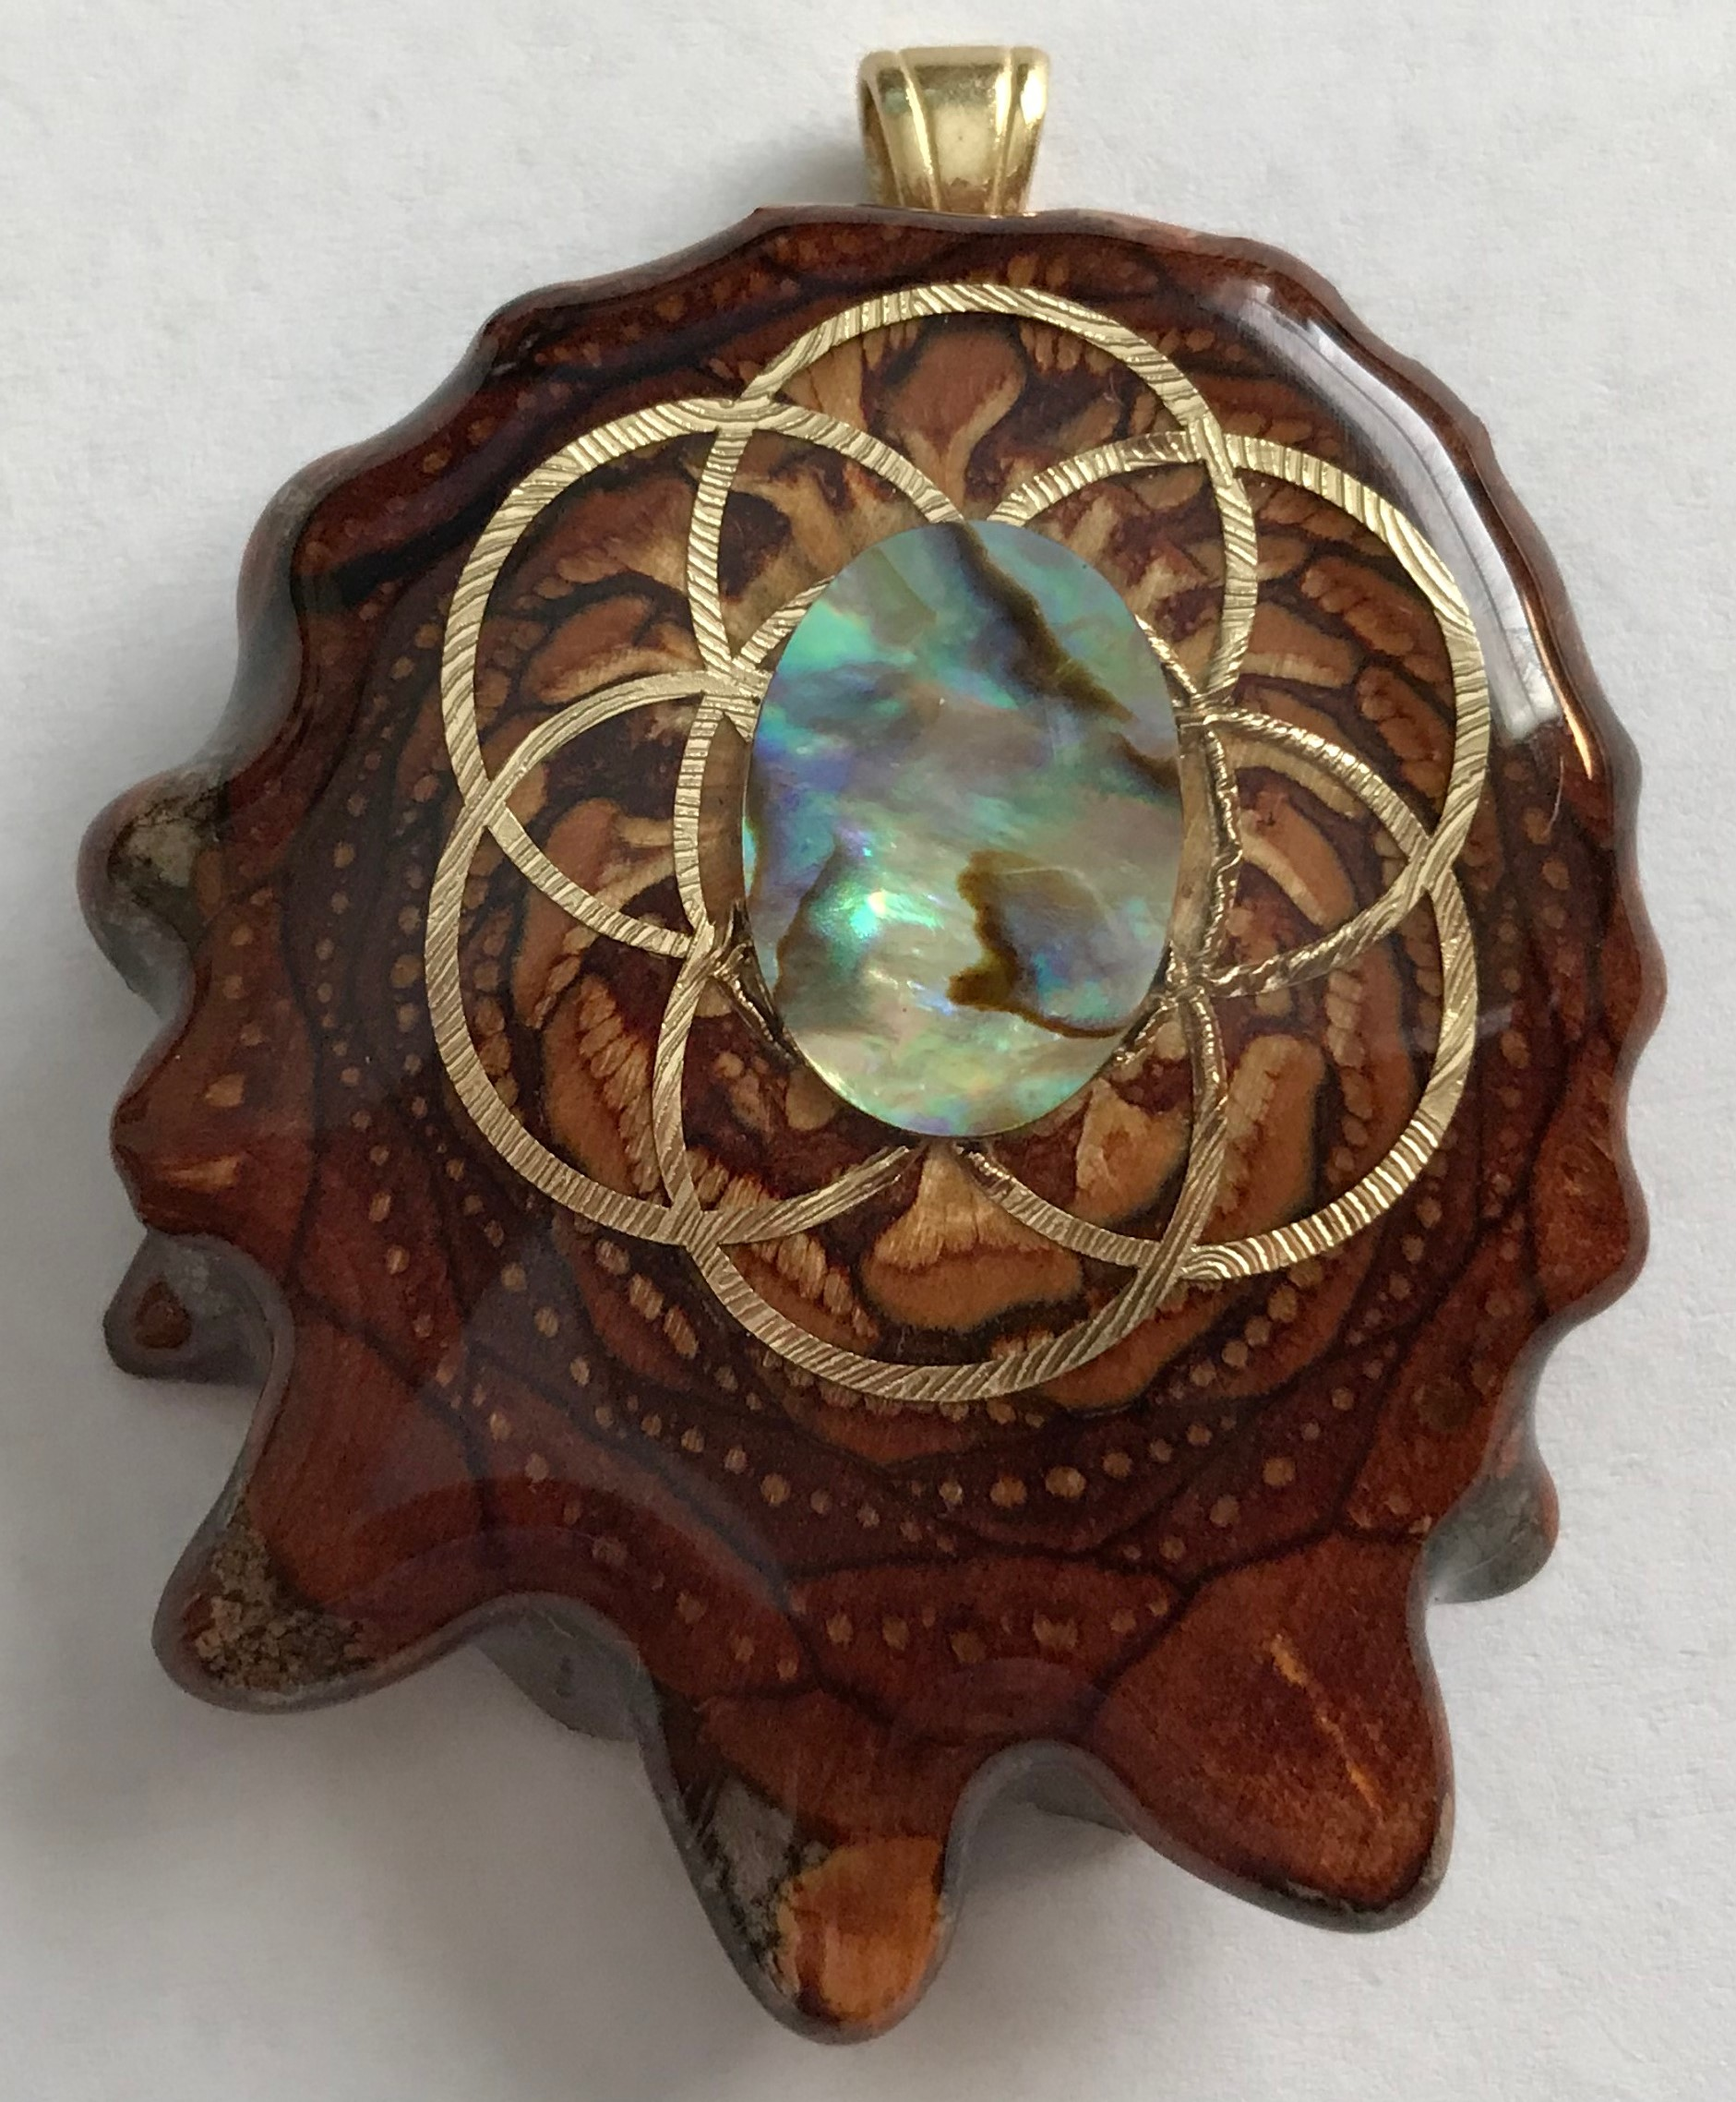 "Third Eye Pinecones - 1.5"" Paua Shell w/Seed of Life Pendant - Handcrafted from the Knobcone Pinecone"